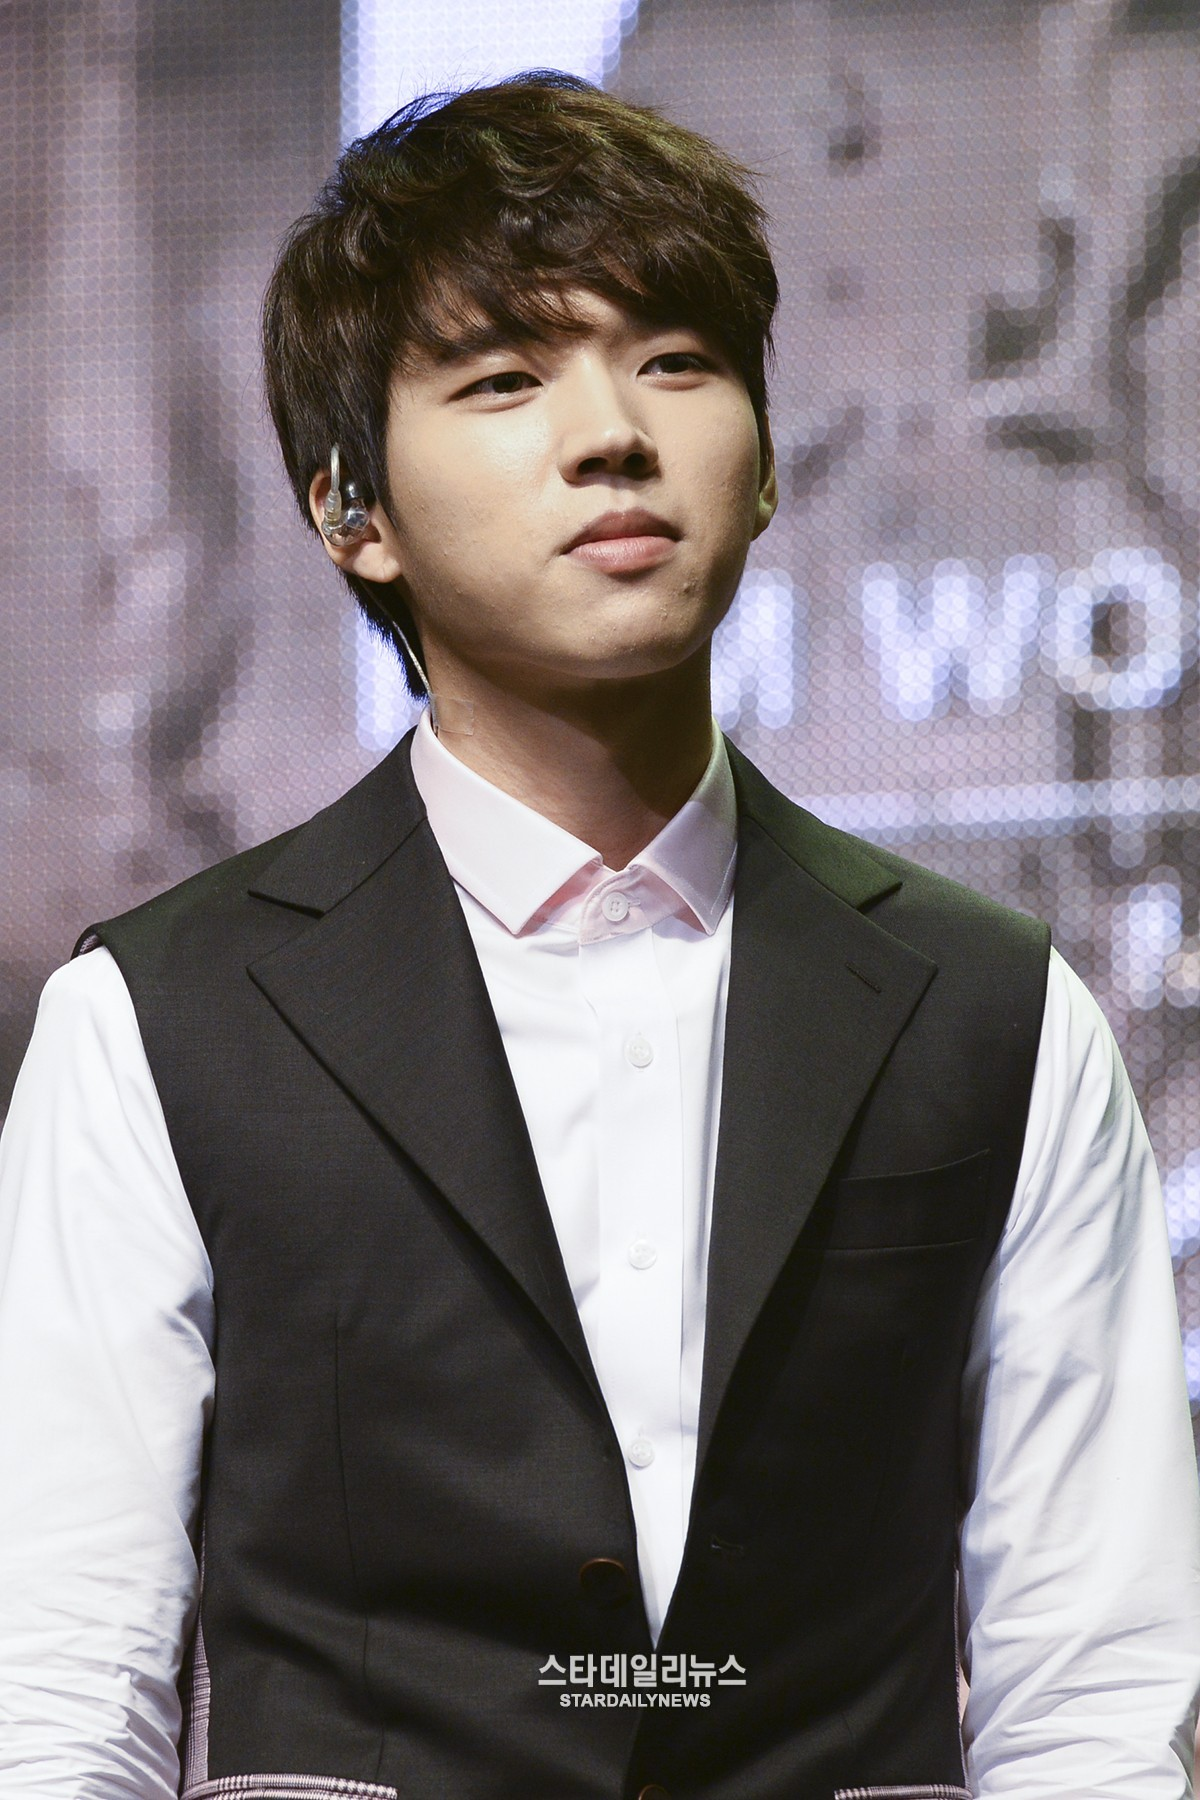 INFINITE's Woohyun Expresses Pride In His First Solo Mini Album